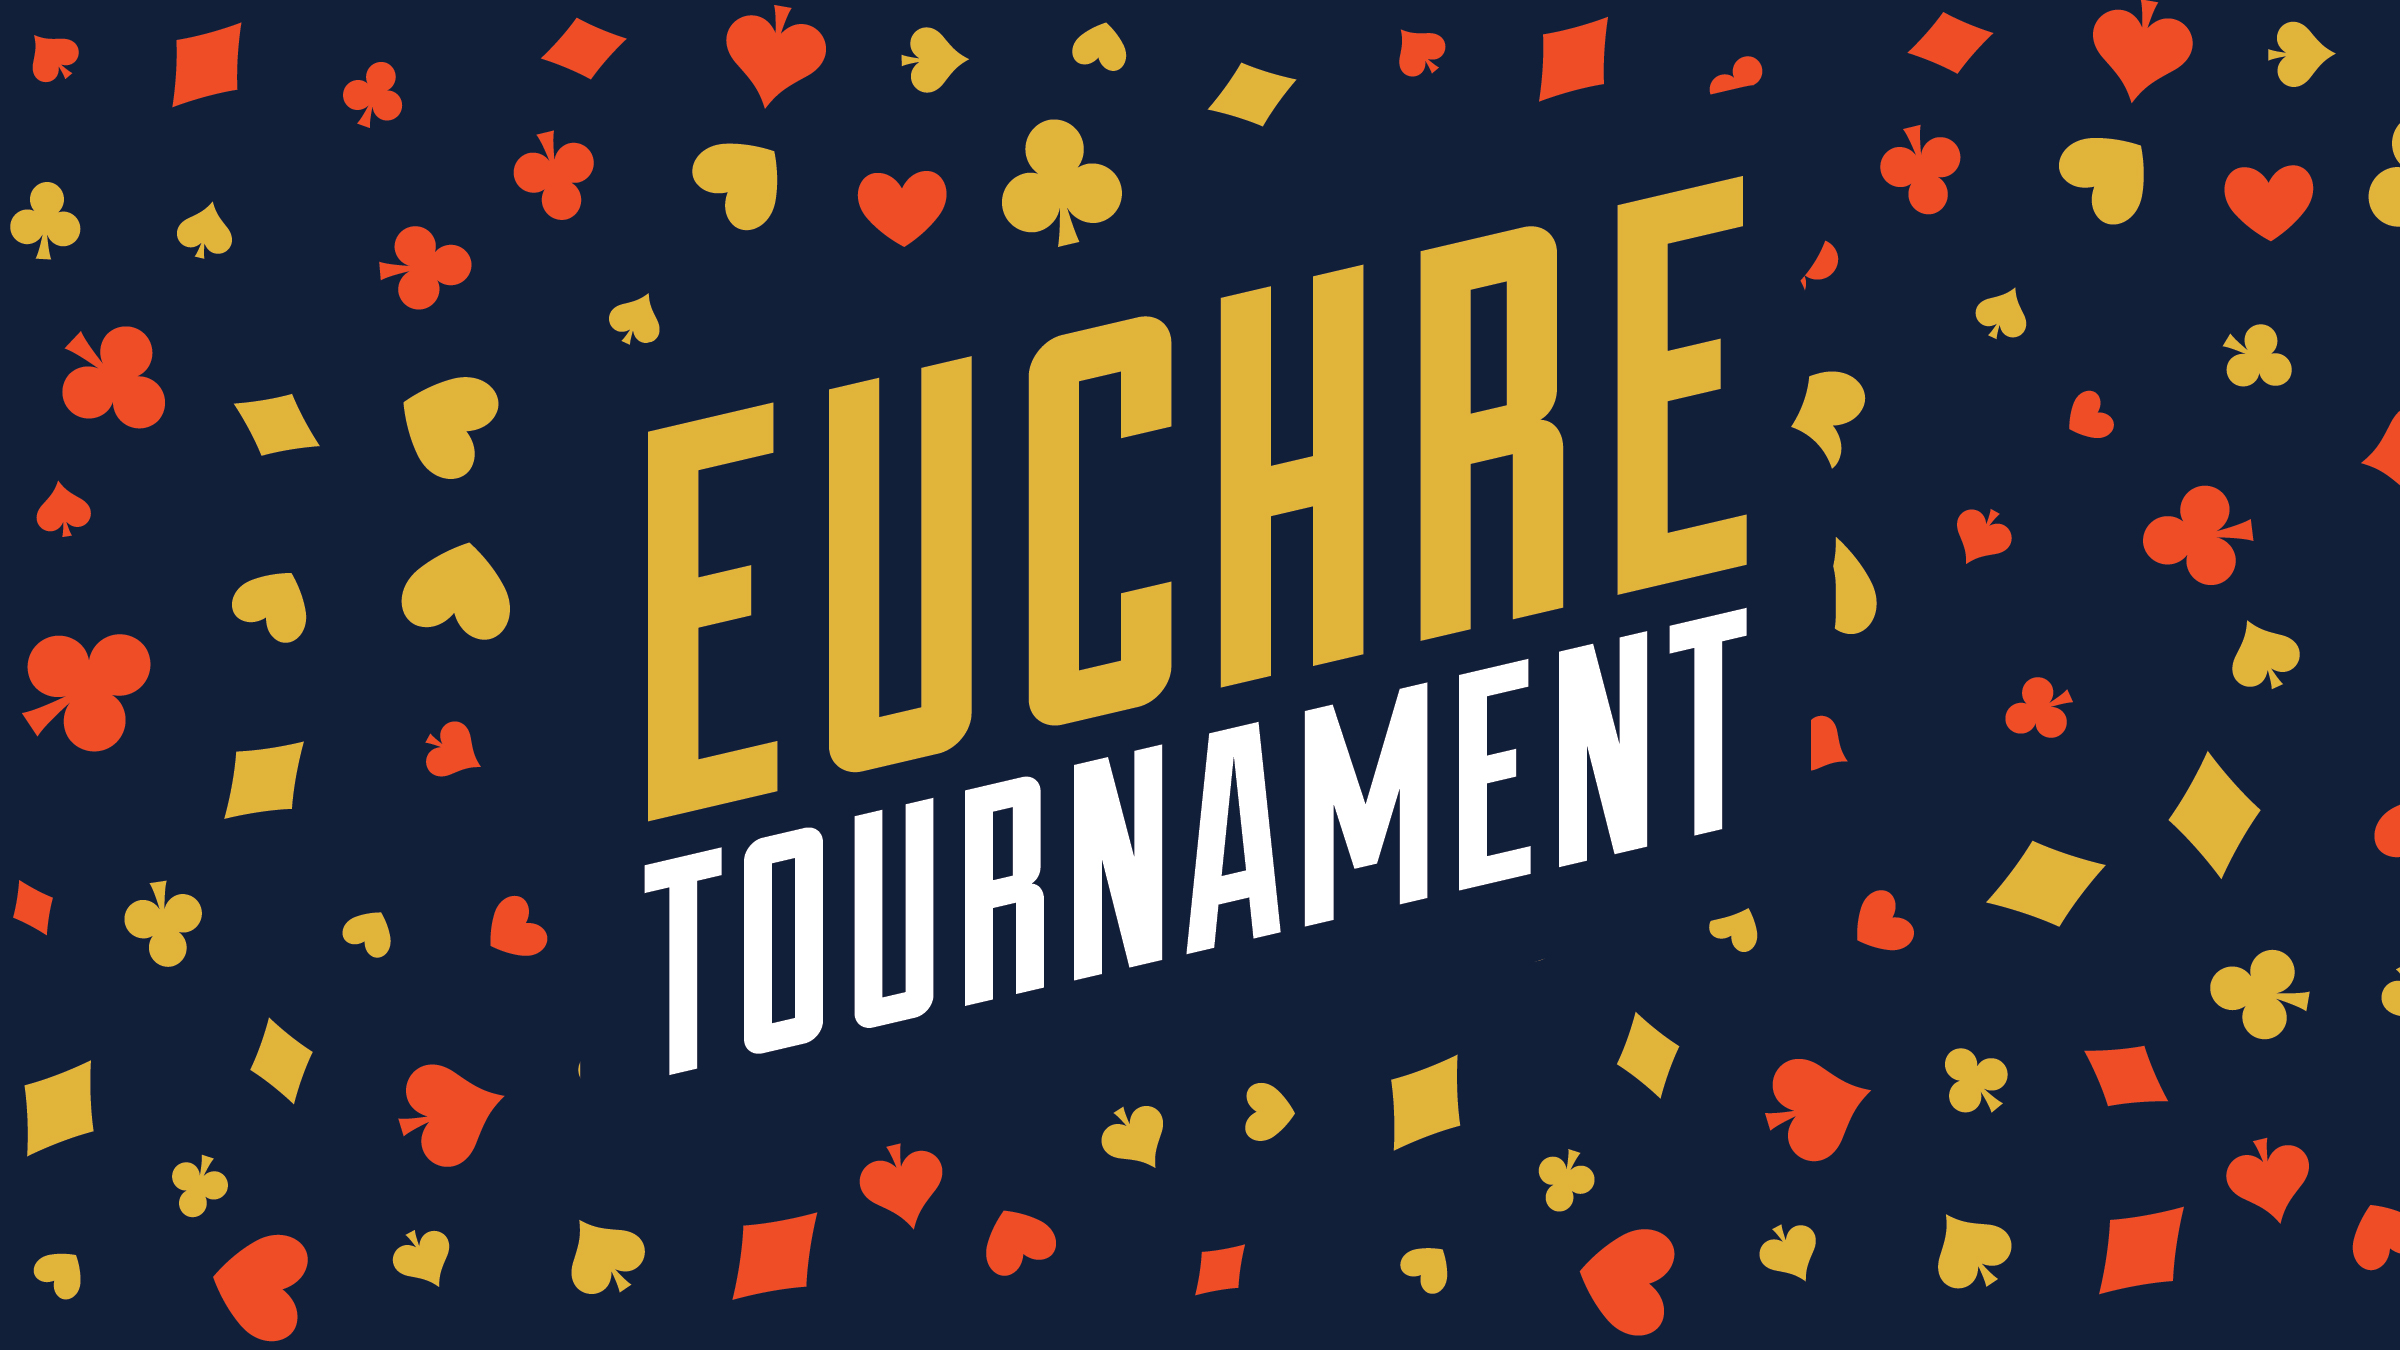 Join us for our first Euchre Tournament night!  First place team is awarded two $25 gift cards. Second place wins two $15 gift cards and third place gets two $10 gift cards! Registration starts at 6:30 PM and games start at 7:00 PM  - All ages, must be 21+ to receive gift card / consume alcohol. Non-alcoholic beverages available.